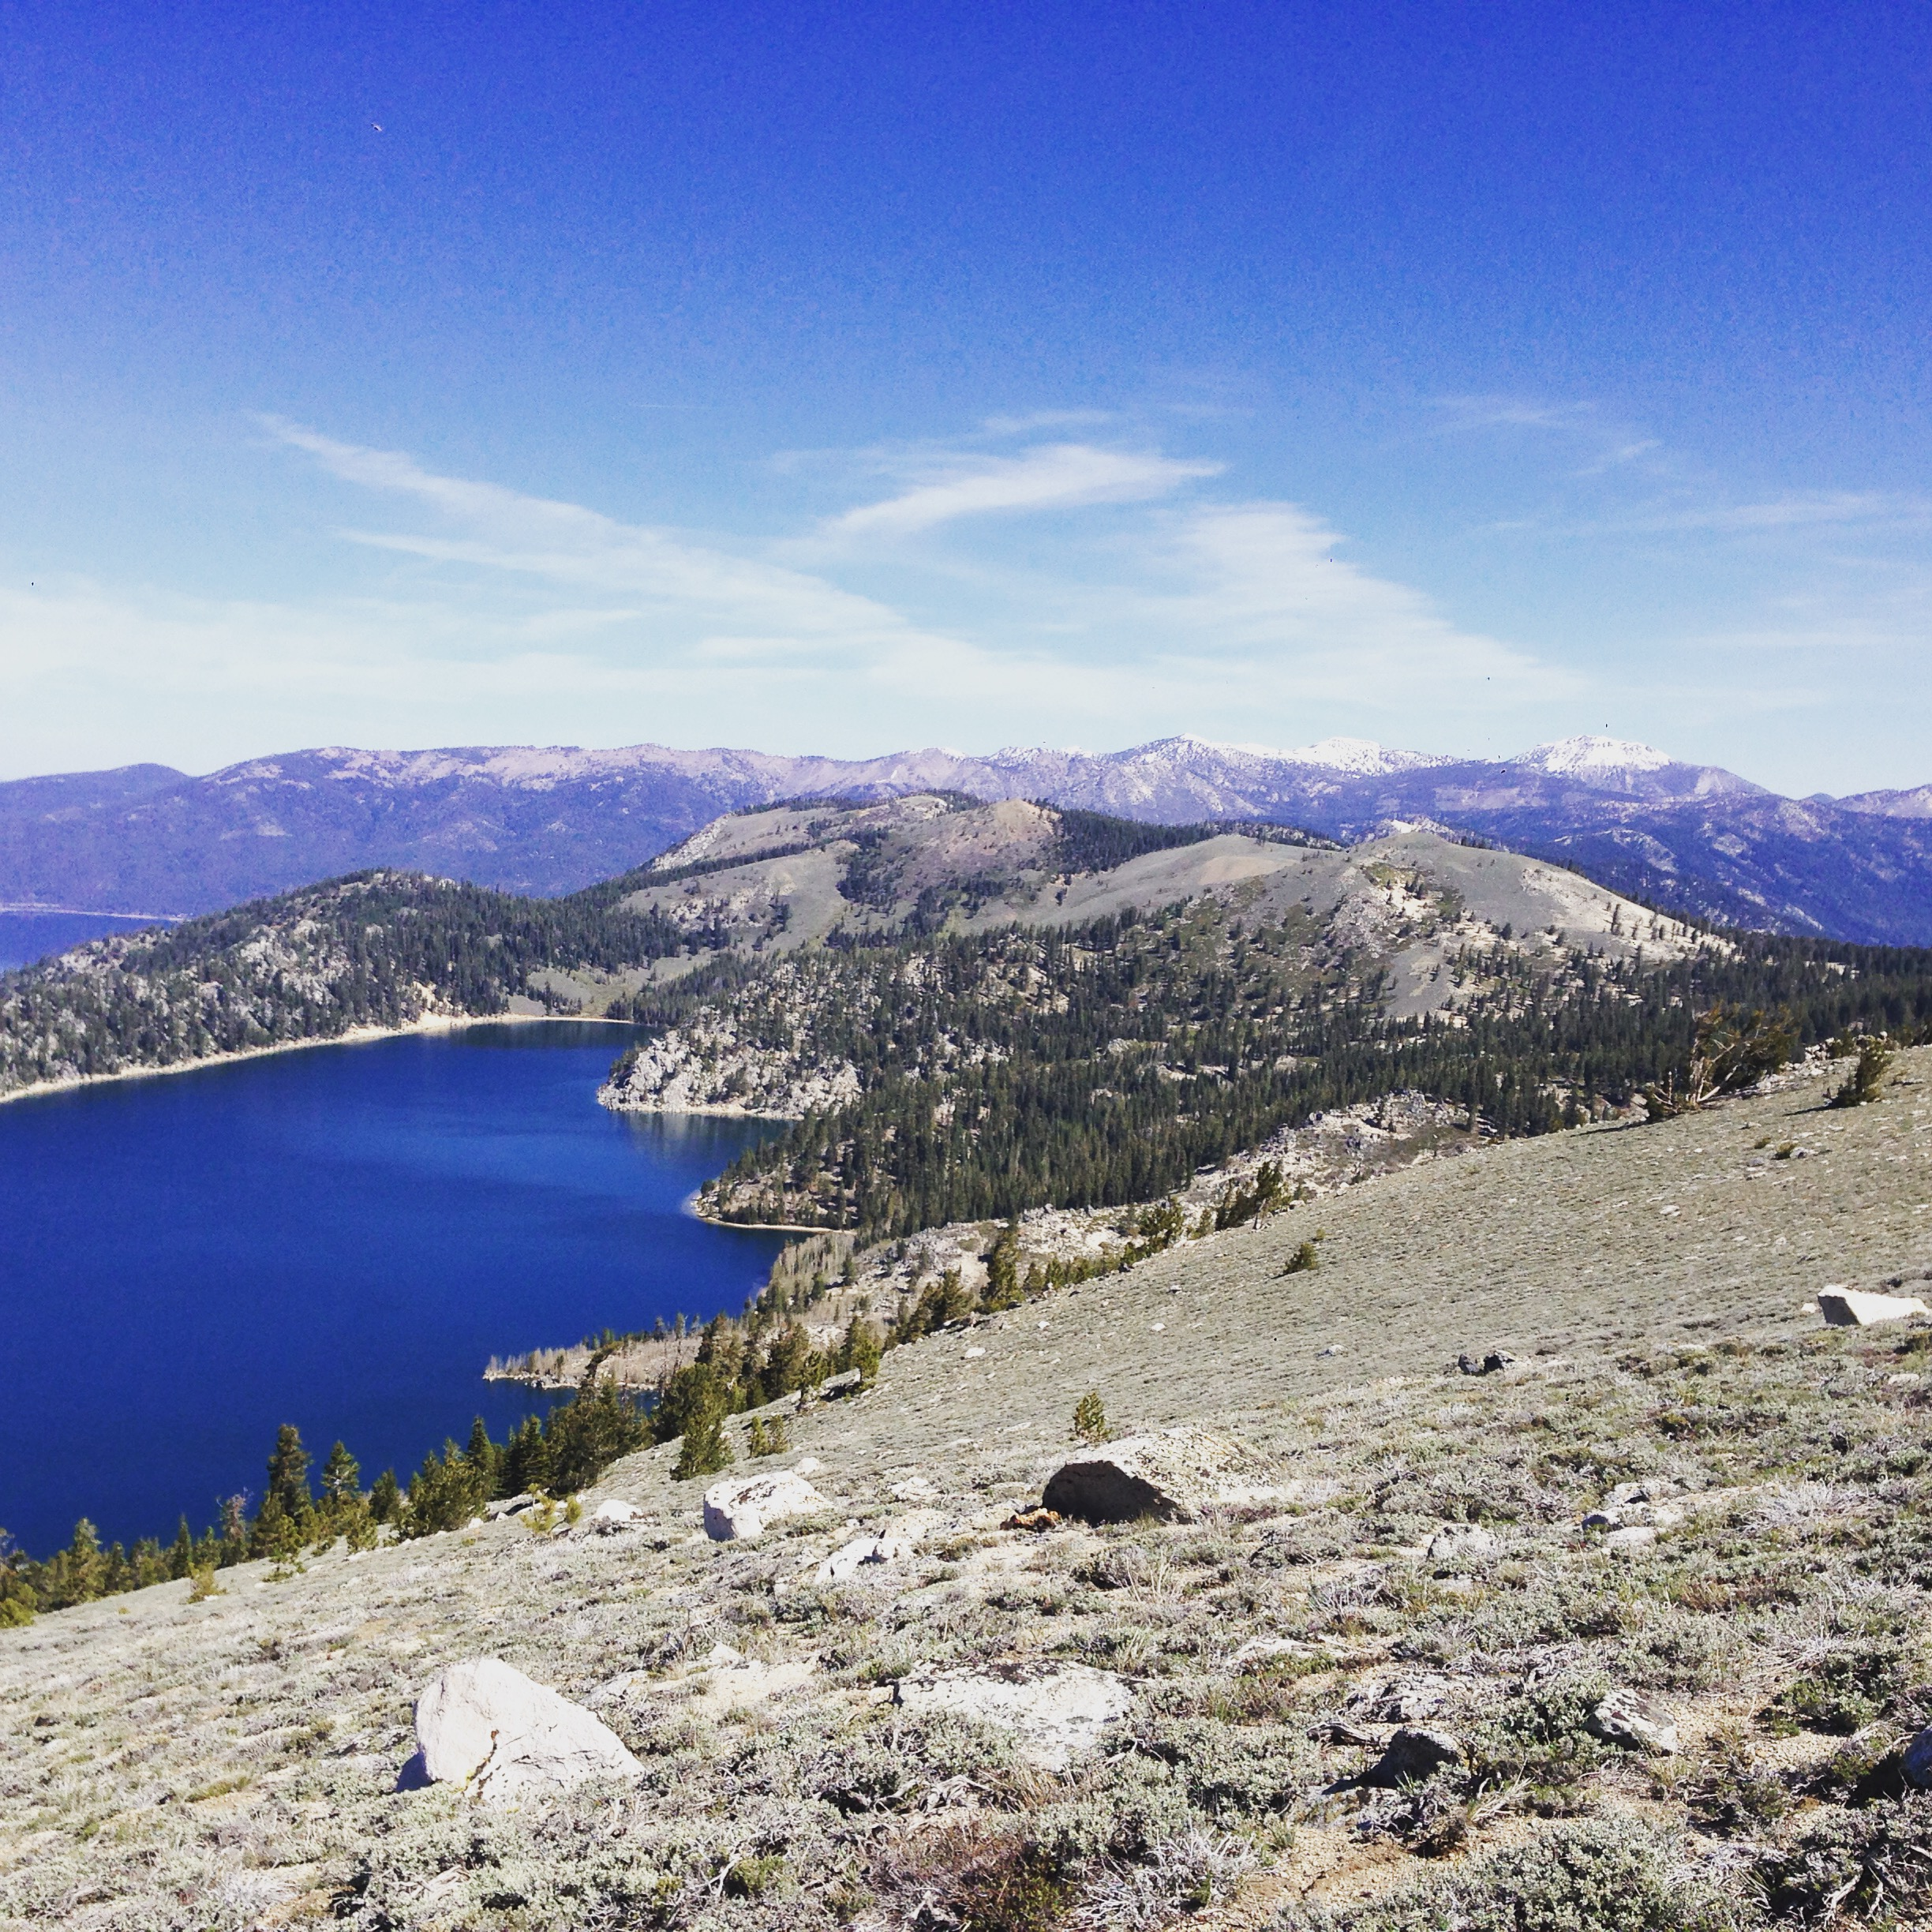 The mountains provide a great deal of perspective and peace. View from Snow Valley Peak over Marlette Lake and Tahoe beyond.